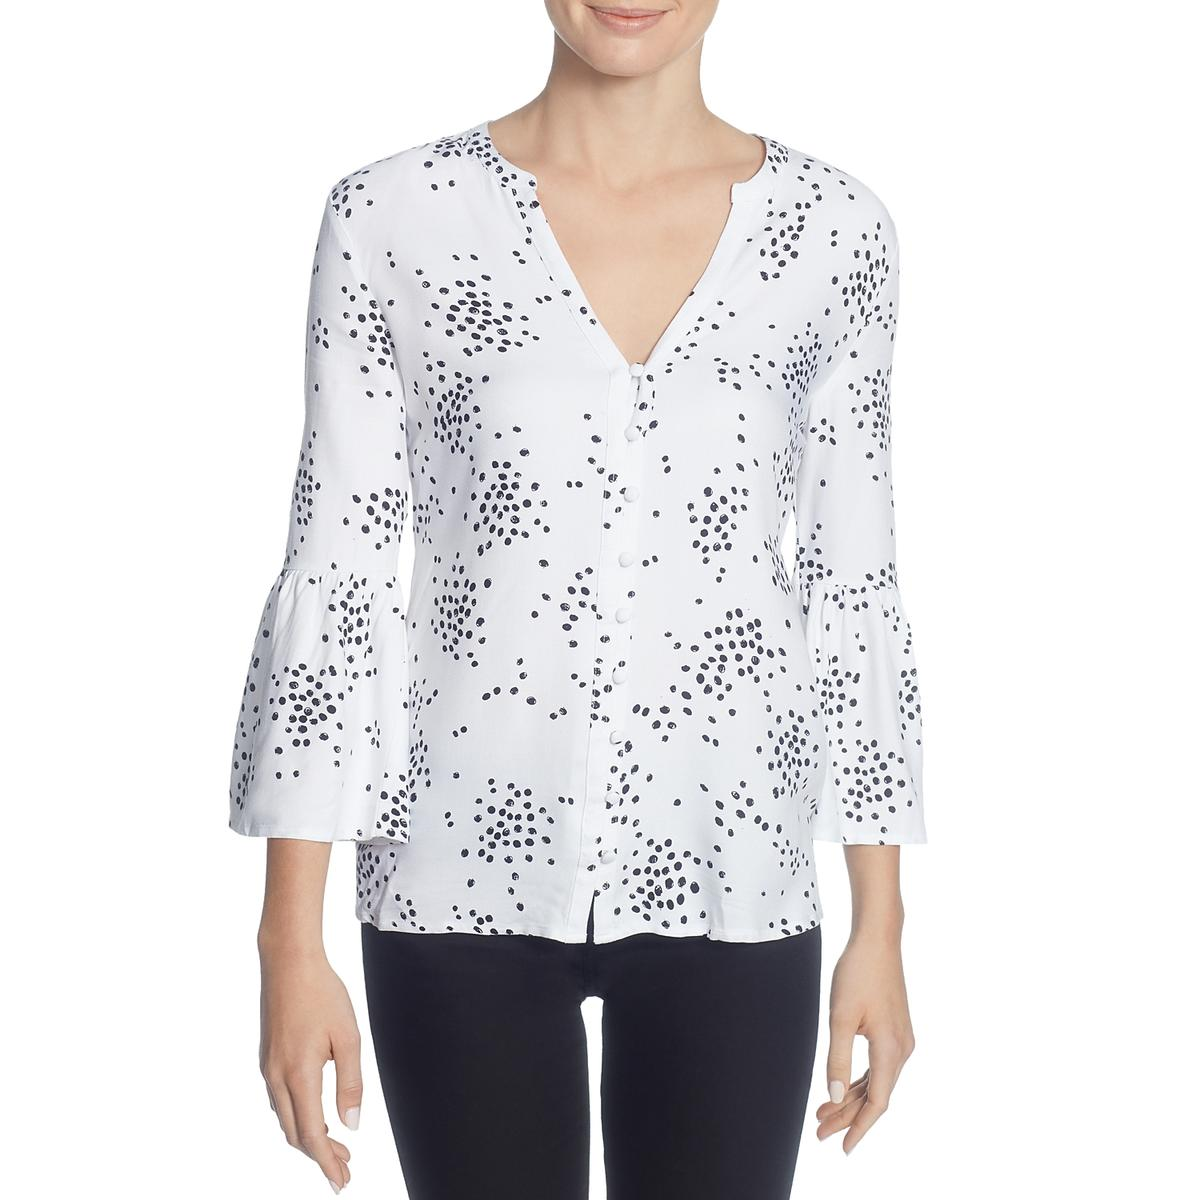 f2c19ddb90c009 Details about CATHERINE CATHERINE MALANDRINO Womens Colette White Blouse  Top L BHFO 6142